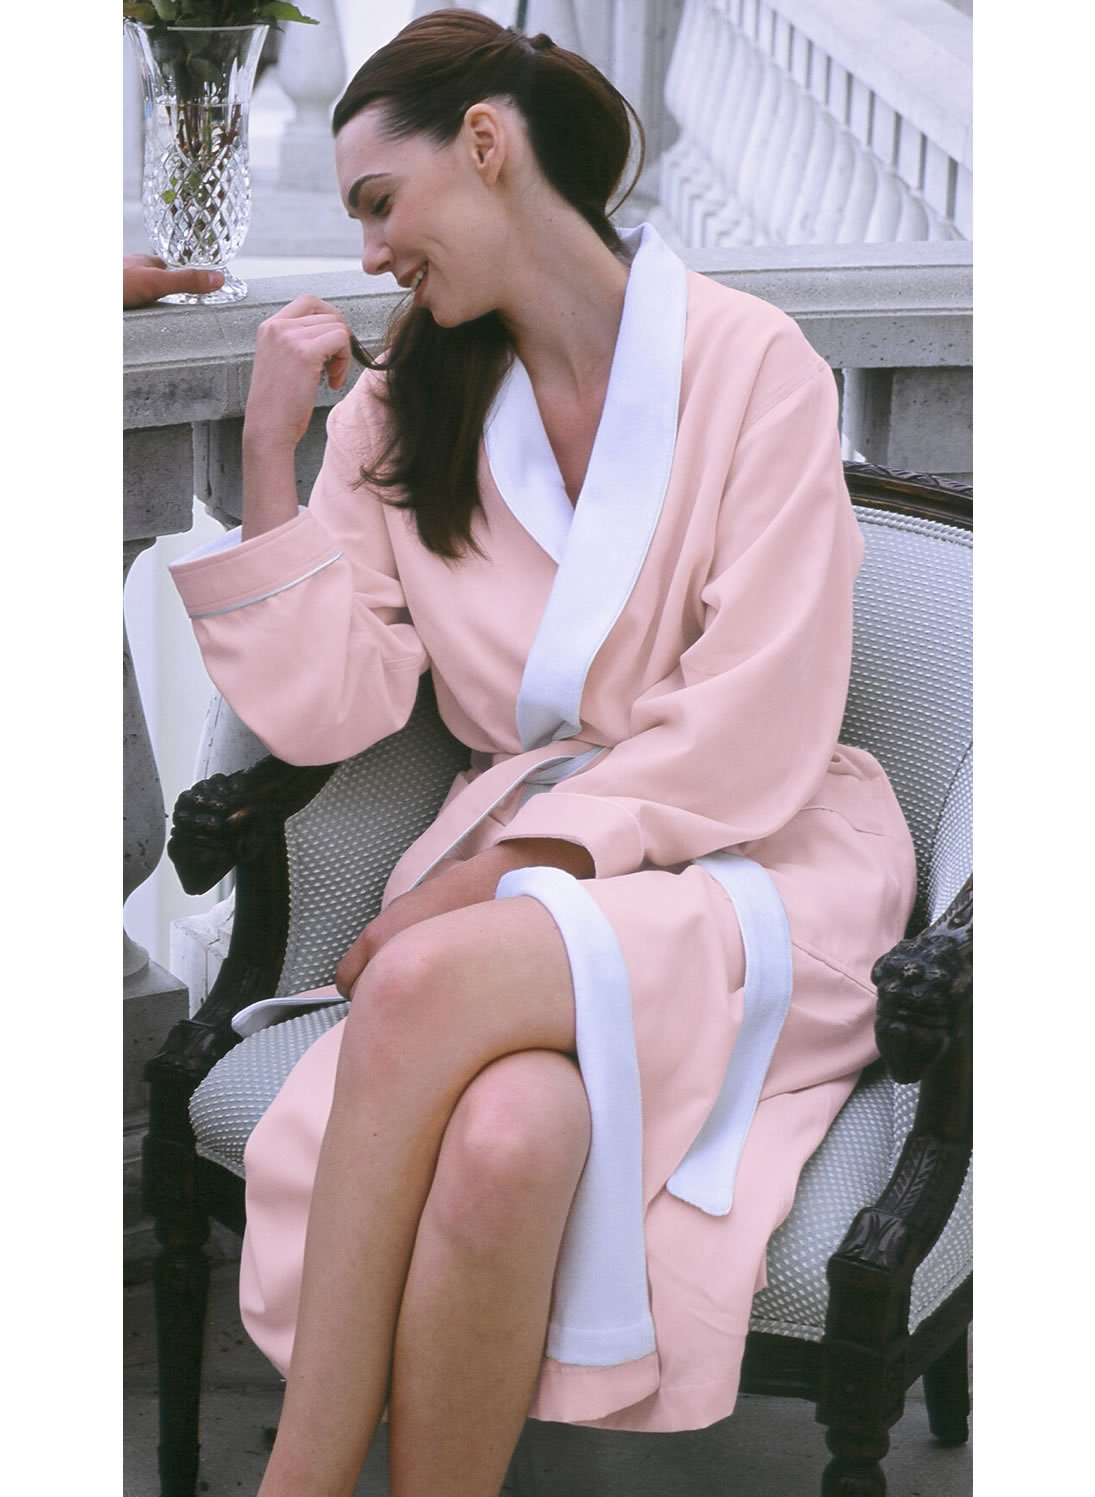 Luxury Spa Robe - Microfiber with Cotton Terry Lining, Pink, XXX-Large by Plush Necessities (Image #8)